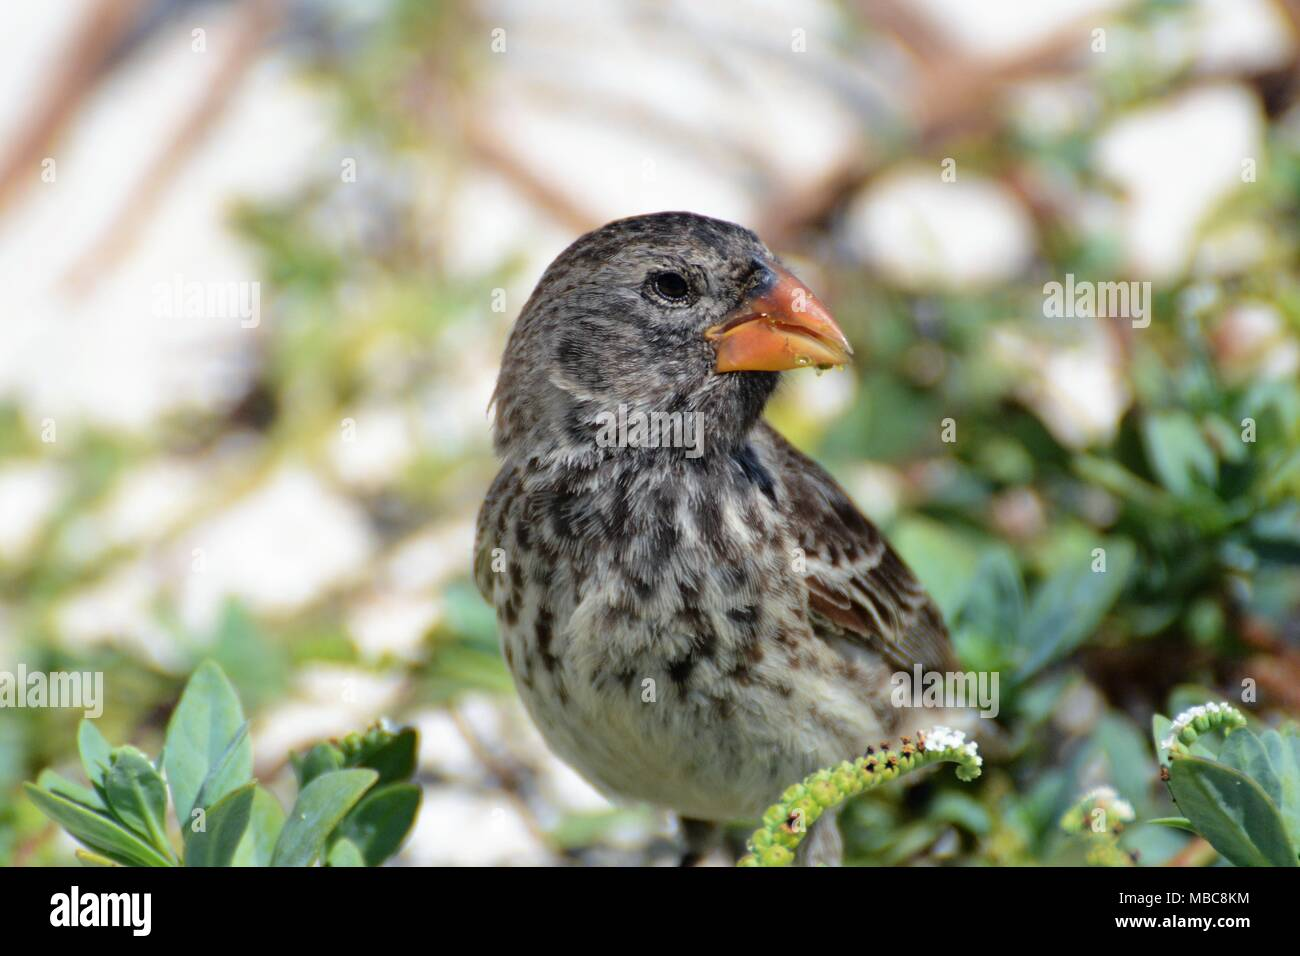 Darwin's finches, female medium ground finch San Cristobal, Galapagos Islands - Stock Image